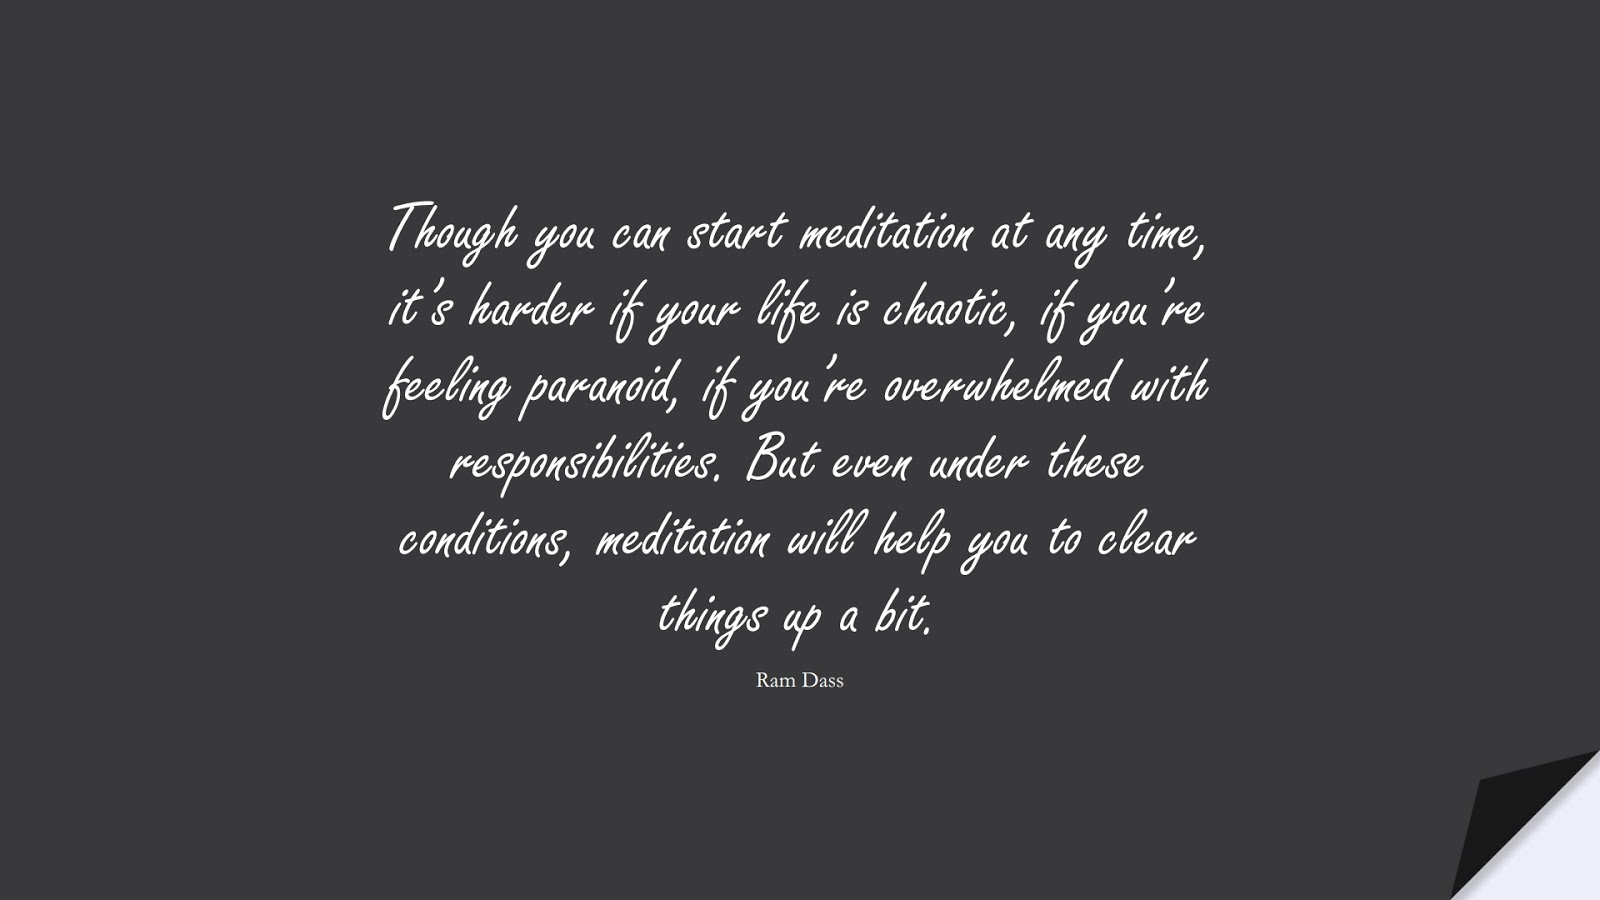 Though you can start meditation at any time, it's harder if your life is chaotic, if you're feeling paranoid, if you're overwhelmed with responsibilities. But even under these conditions, meditation will help you to clear things up a bit. (Ram Dass);  #StressQuotes